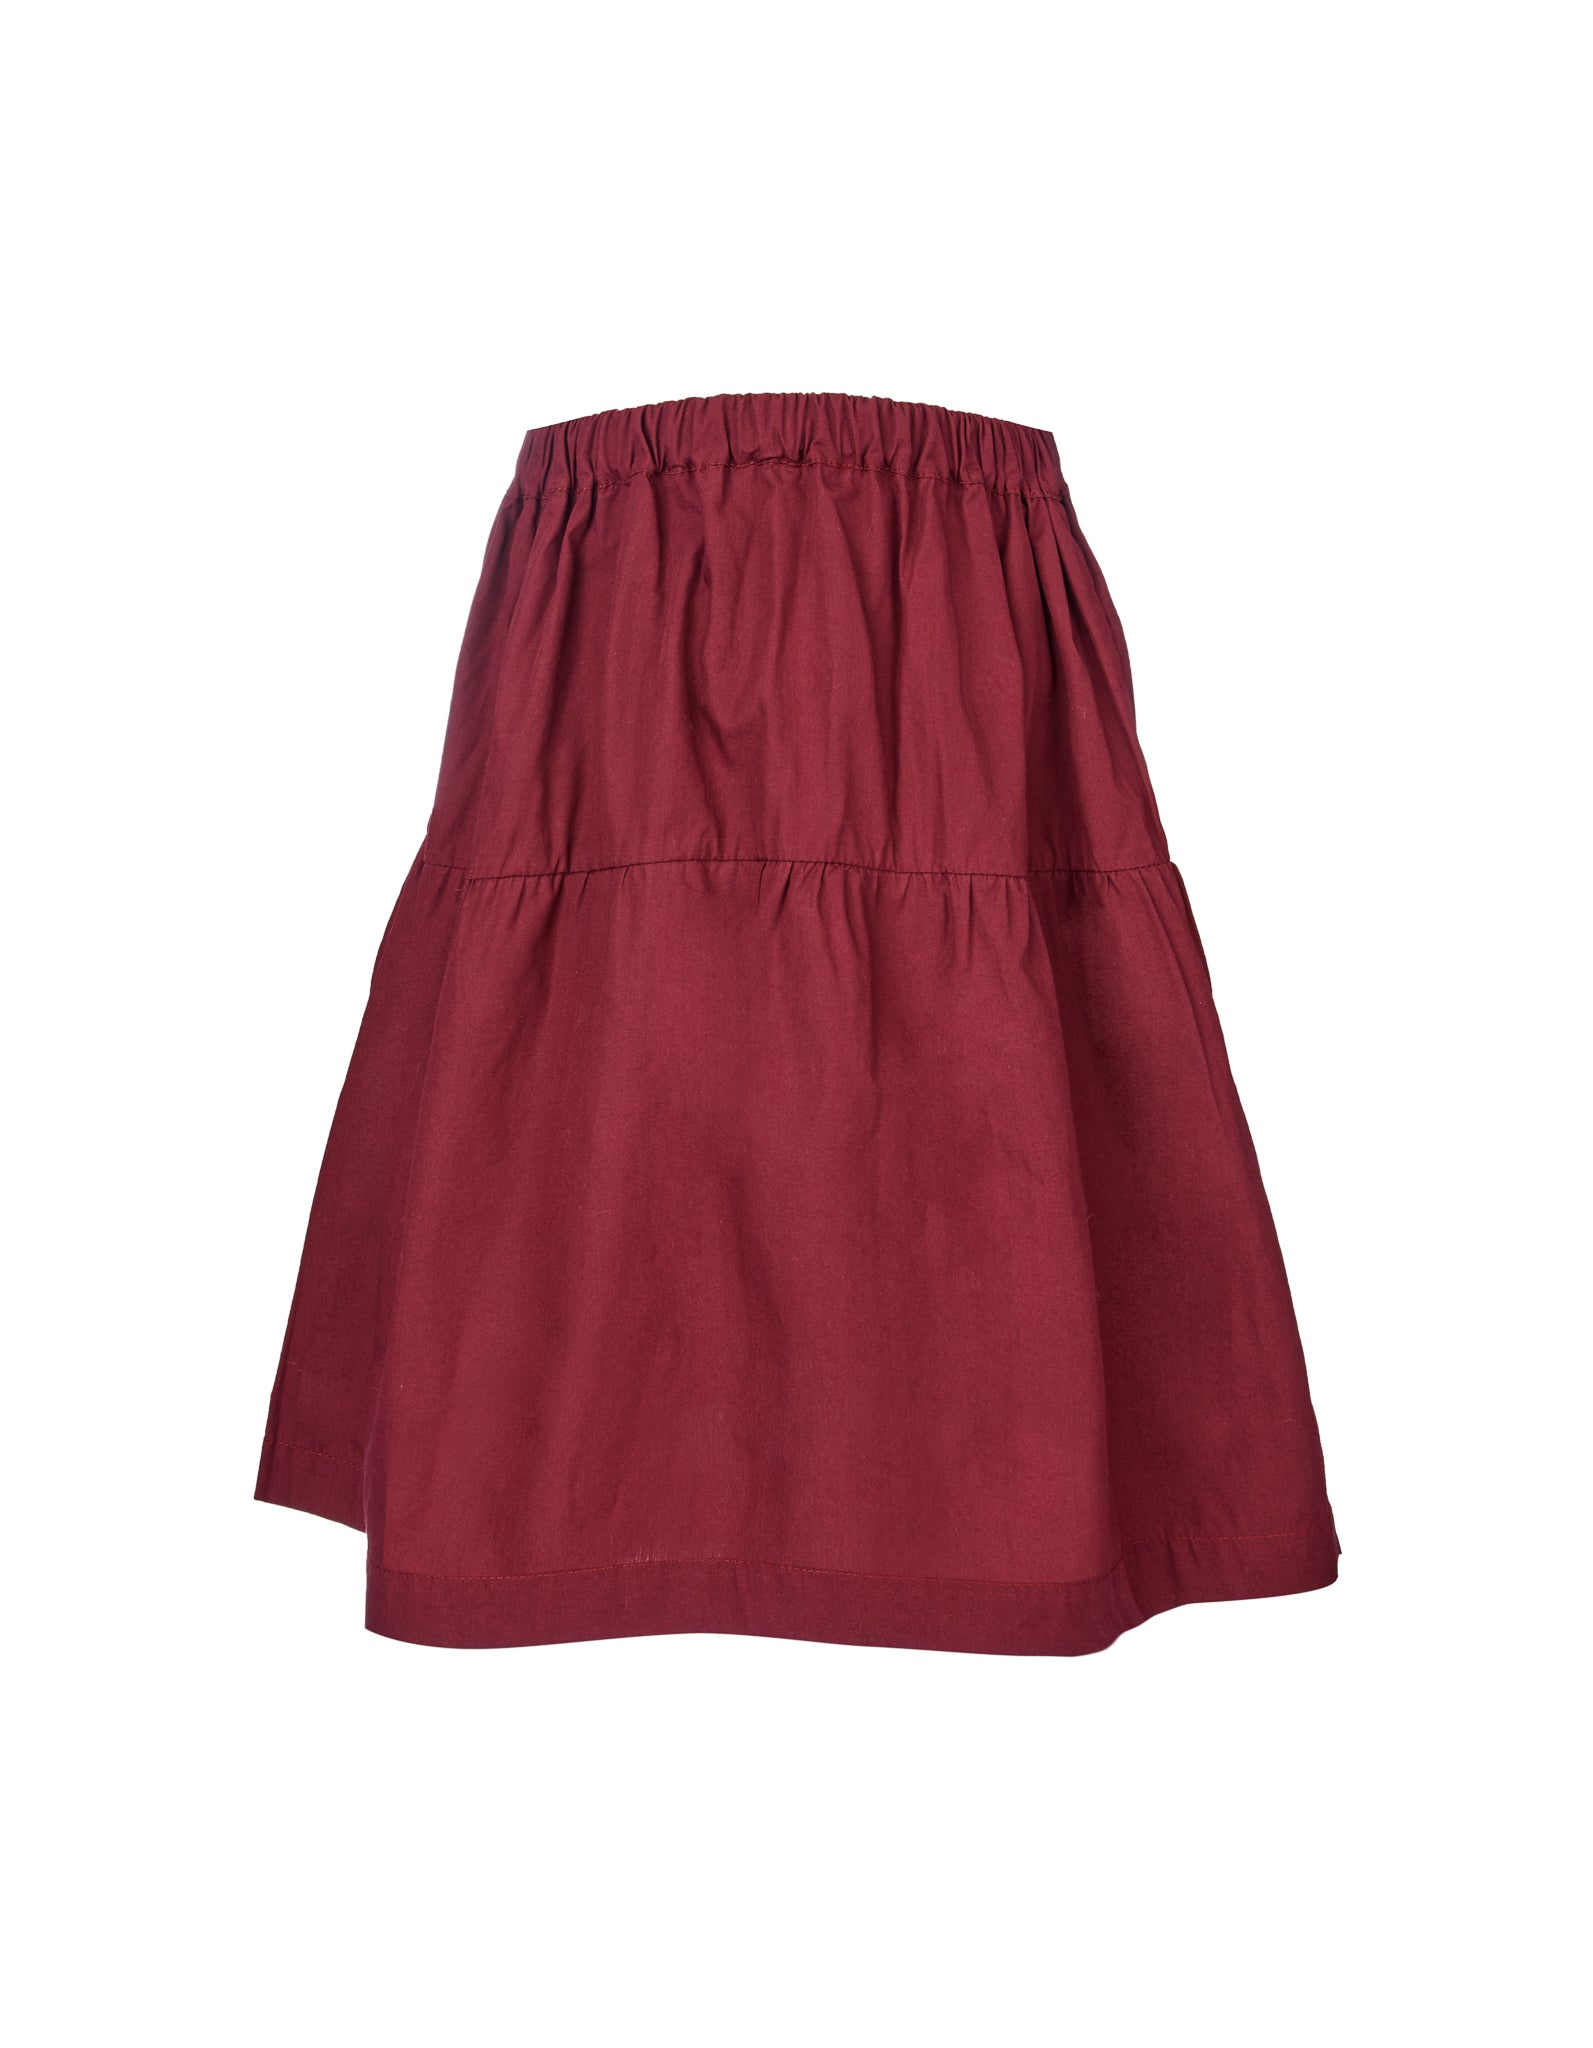 M'A KIDS WAISTBAND SKIRT IN BURGUNDY